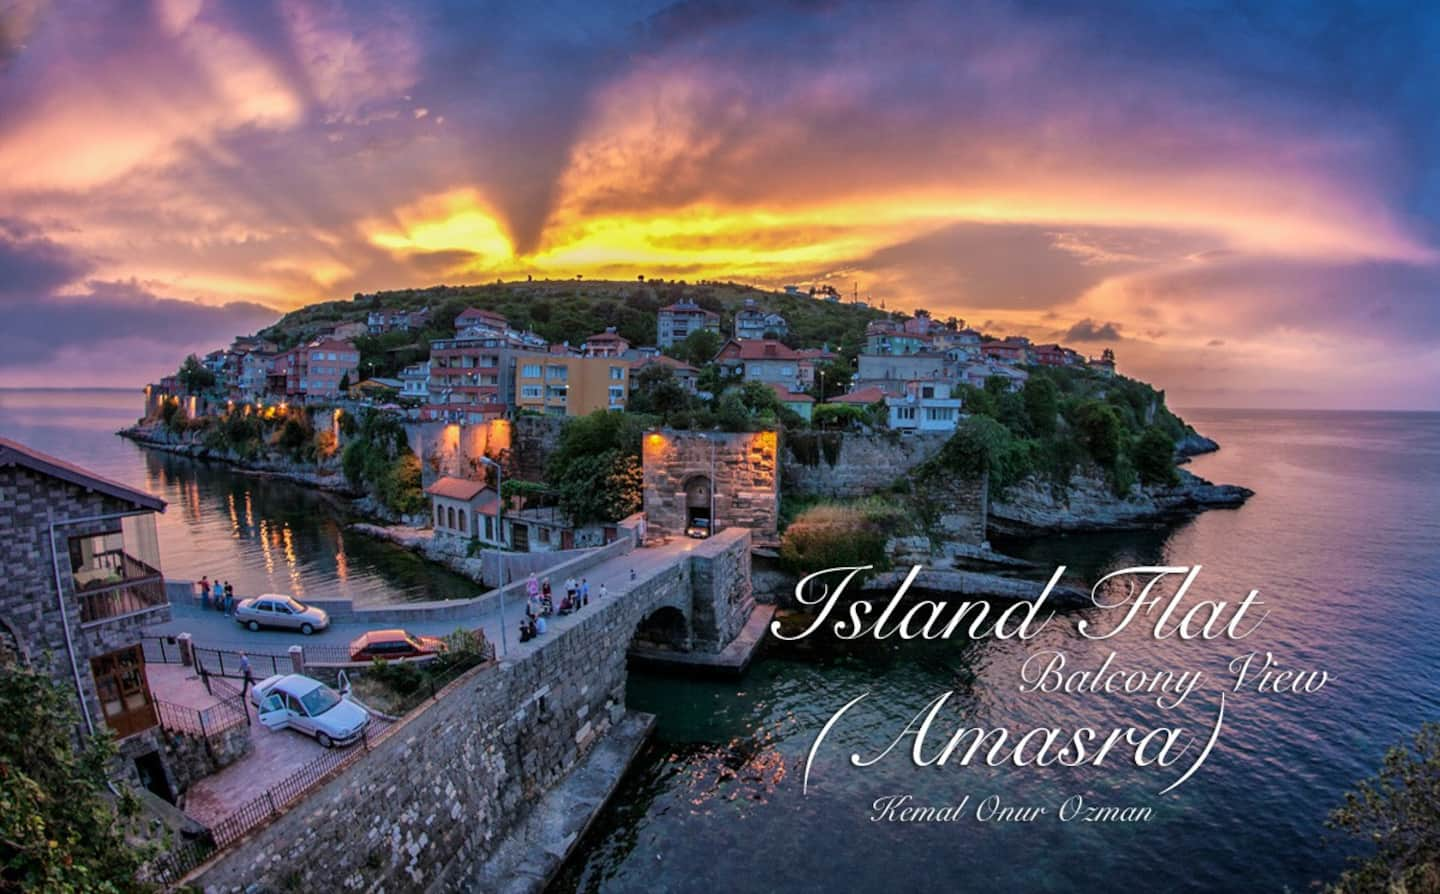 AirBnB in Turkey, Amasra: Inner castle location, and island views!